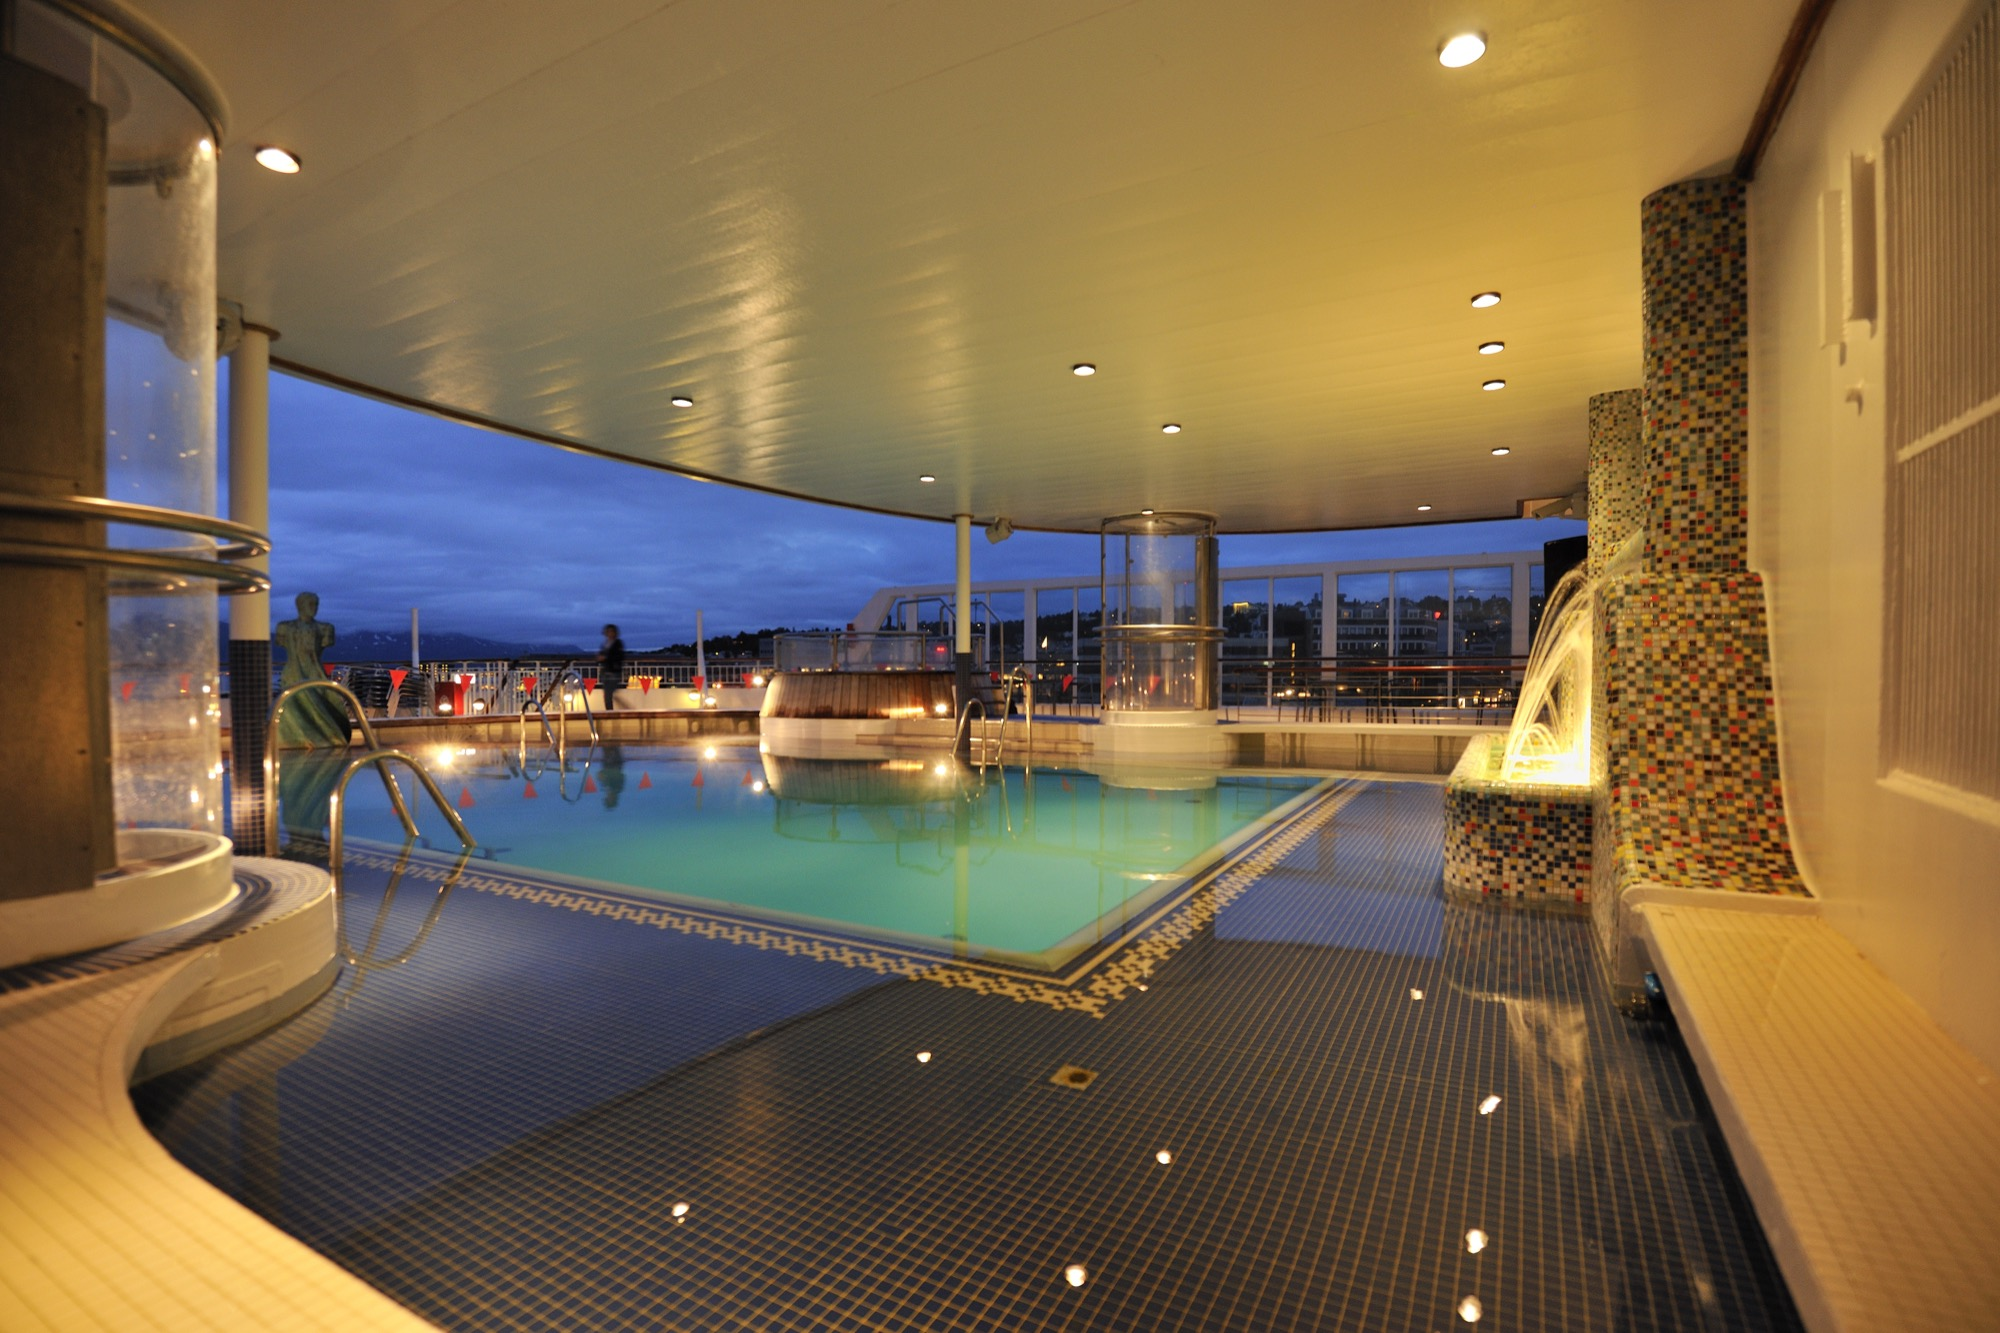 Hurtigruten Cruise Lines MS Finnmarken Exterior Swimming Pool 4.jpg